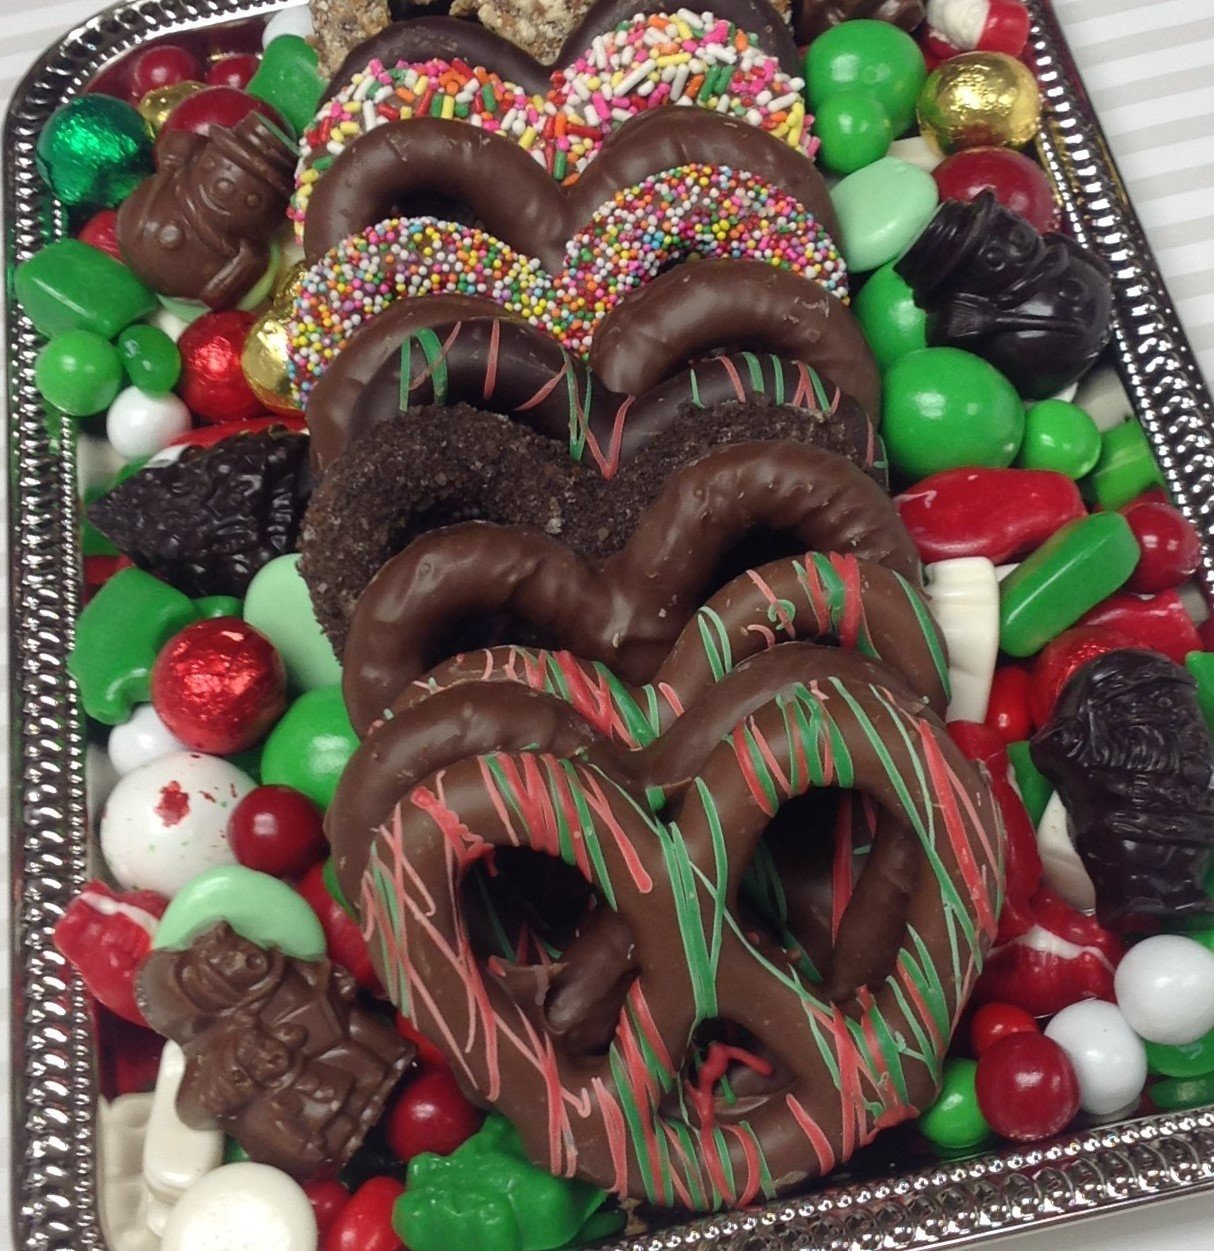 F - Assorted 3 Ring Gourmet Pretzel Tray with Holiday Mix.